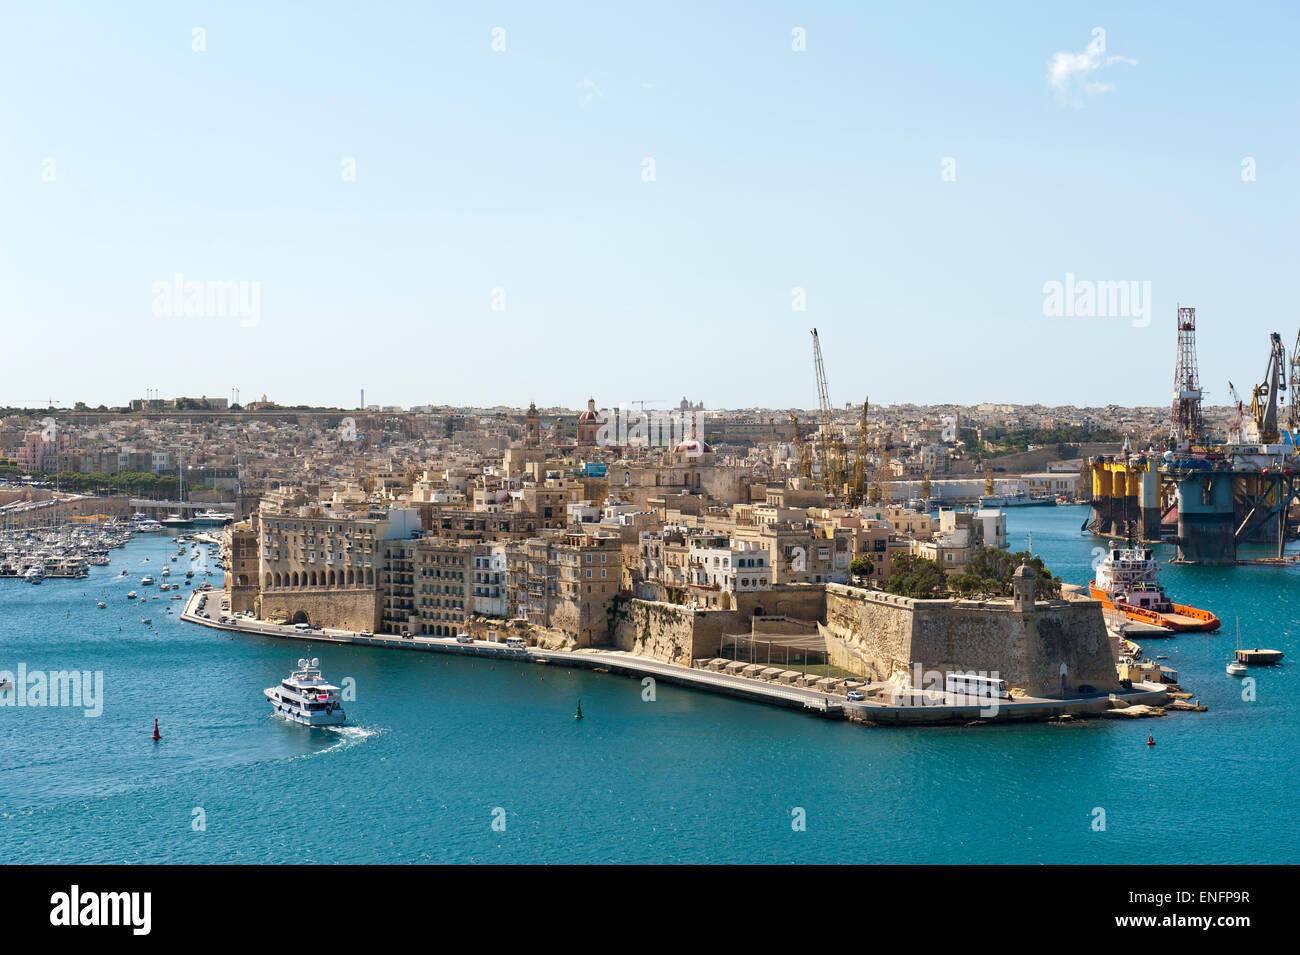 View of the historic centre of Senglea from Valletta, harbor with oil well, Malta - Stock Image